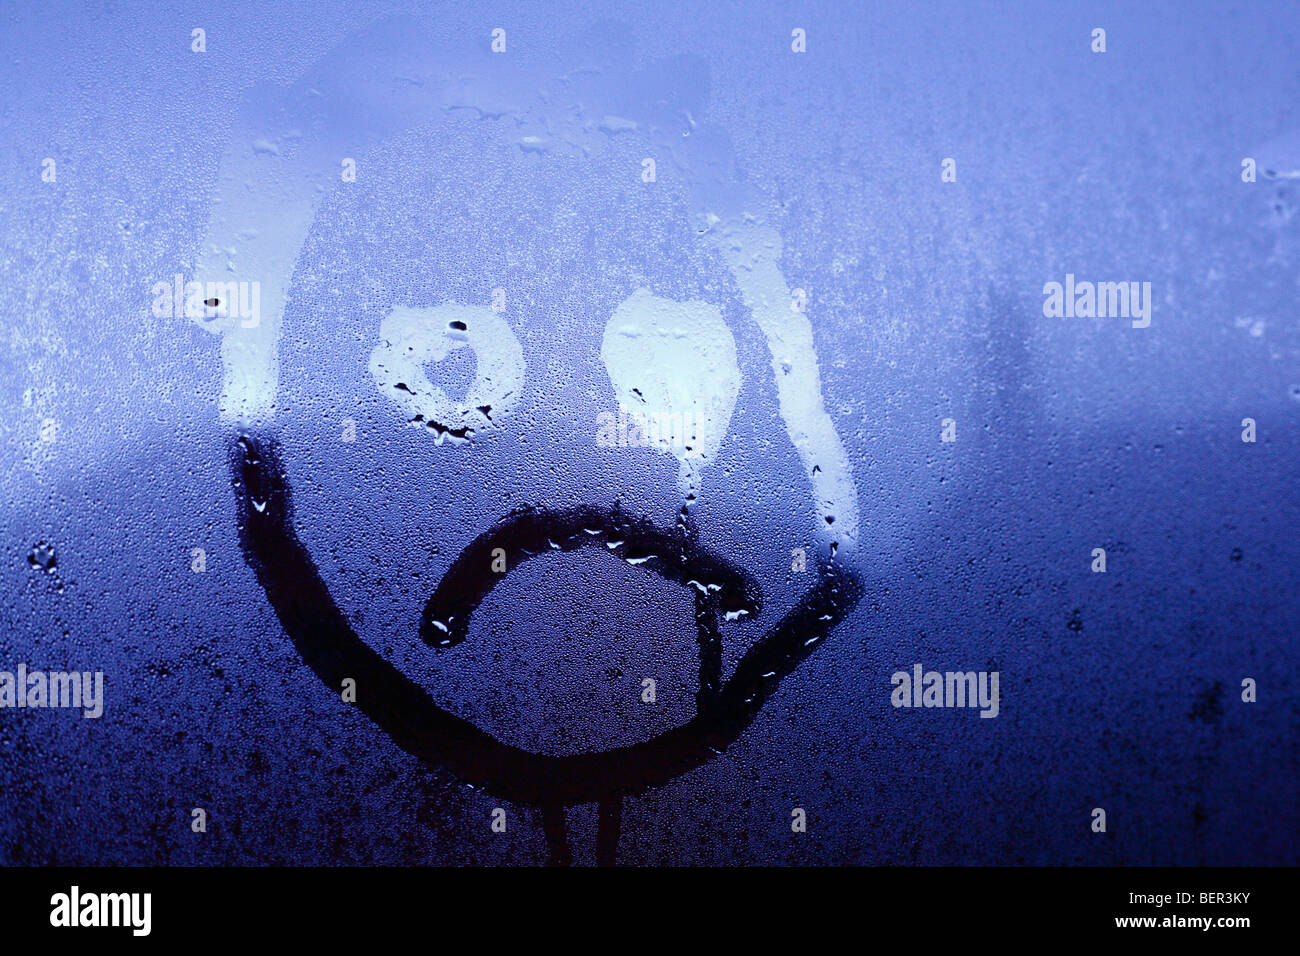 An unhappy childlike face drawn onto window condensation. - Stock Image